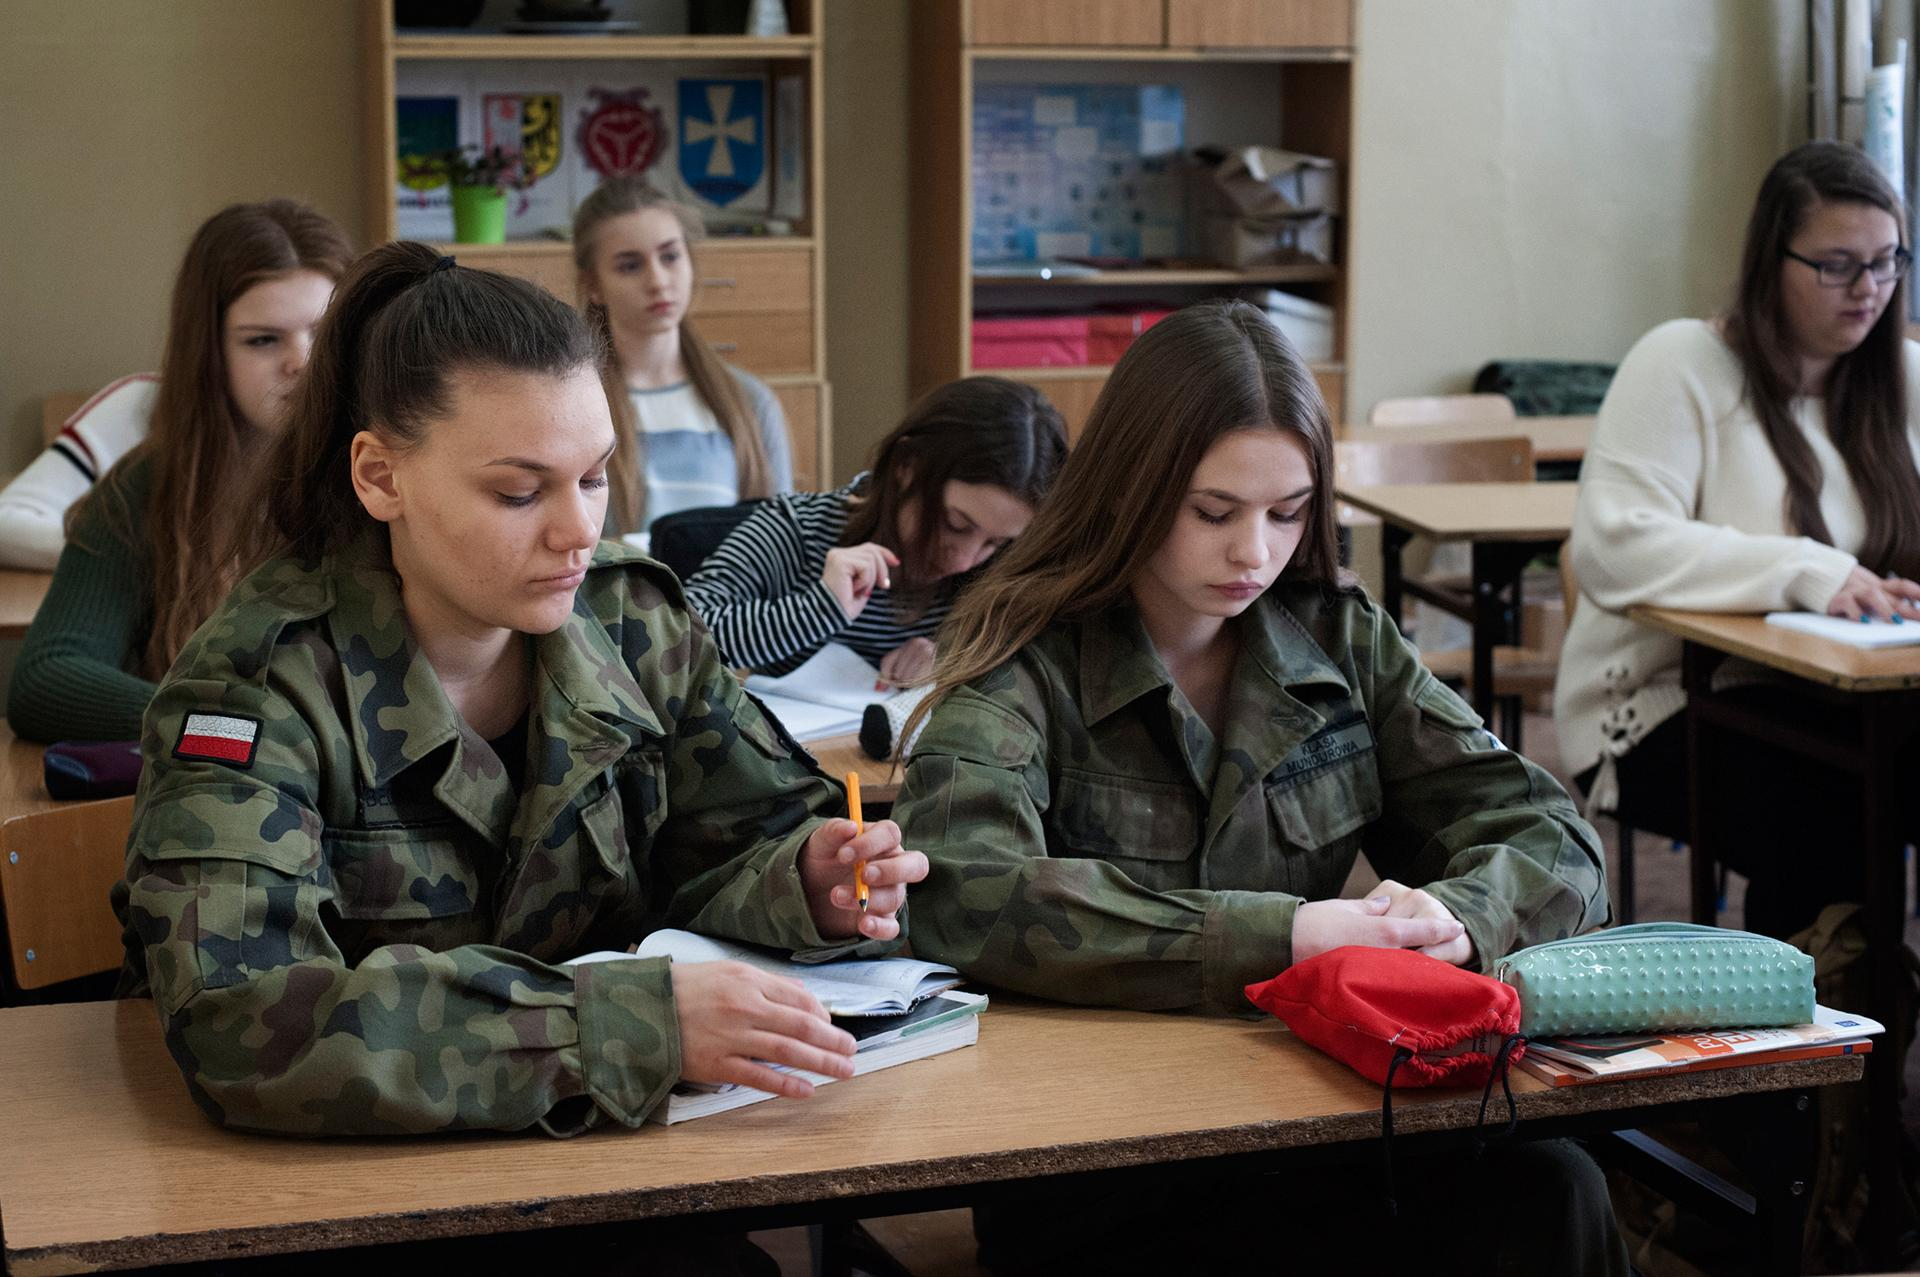 """The 17 years old  students during the history class, the II Public High School in Brzeg. The students who chose """"military profile"""" attend the same classes as those from """"Humanist Profile"""", with the difference that twice a week they have to wear army uniforms. Brzeg 2017 """"Here, no matter how much you study, if you don't have contacts you will not find a job"""" – says Paulina, one of the students aged 17 – """"Many people go abroad, like my cousin, and do not plan to return. If I could have built this country from scratch, work would have been my priority."""""""